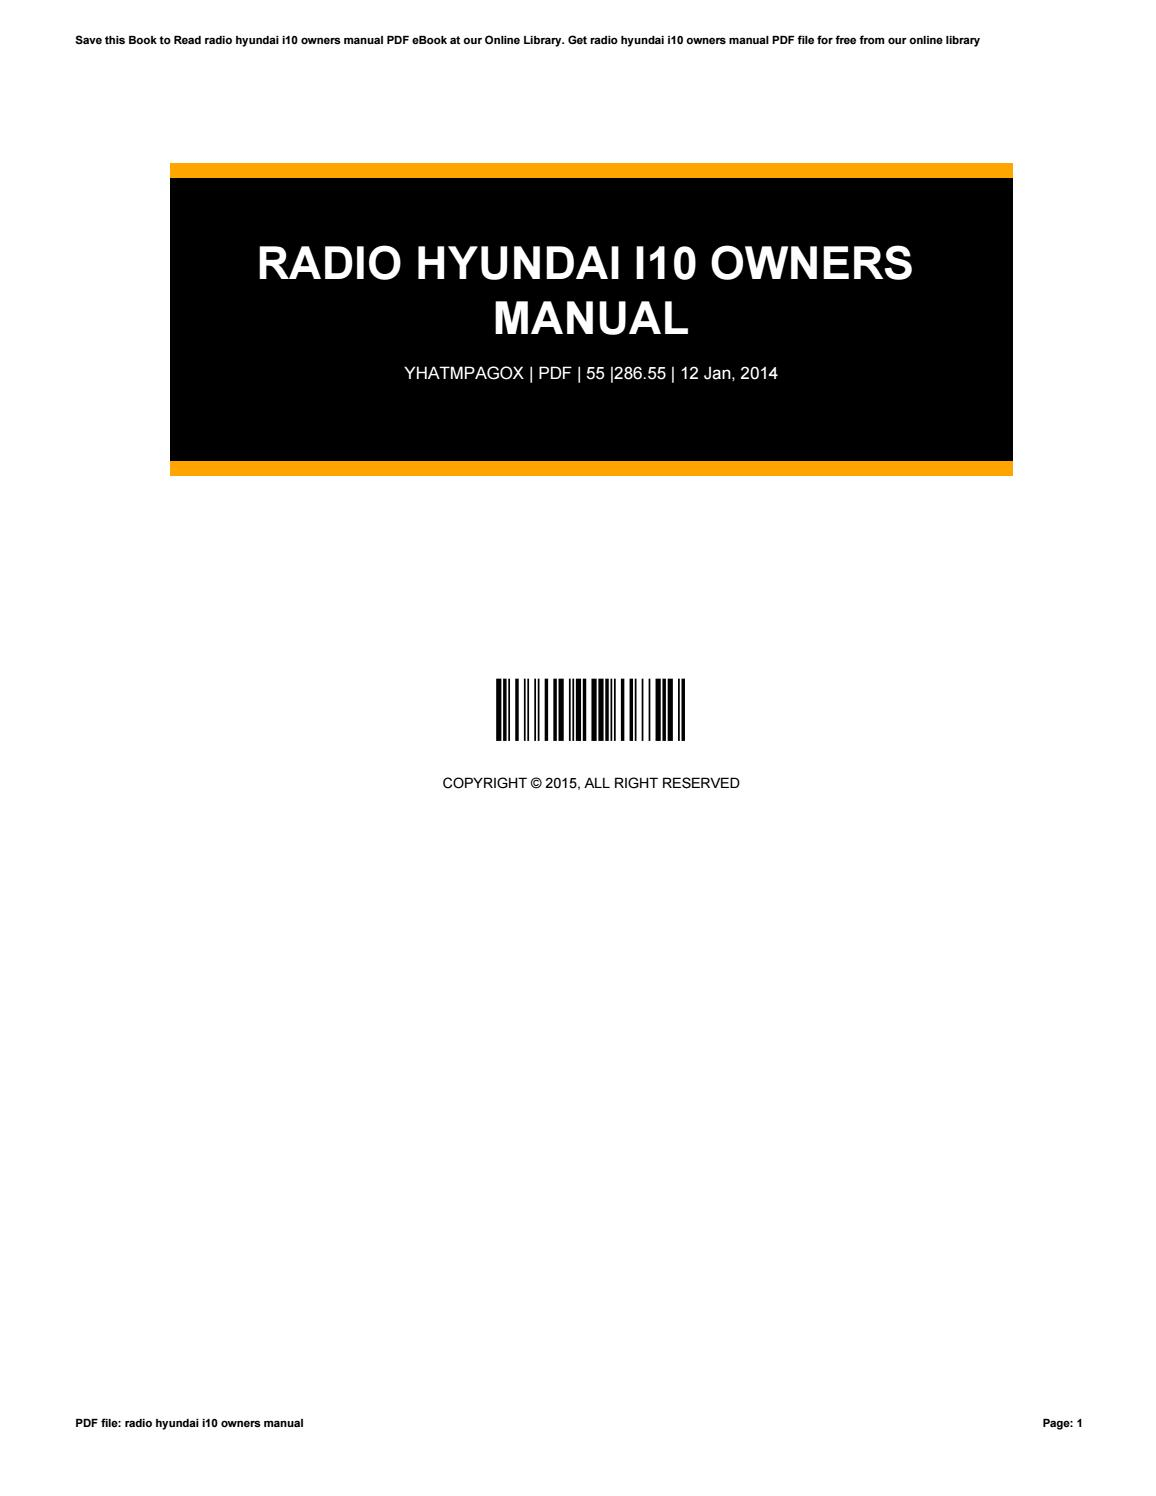 Radio Hyundai I10 Owners Manualrobert - Issuu